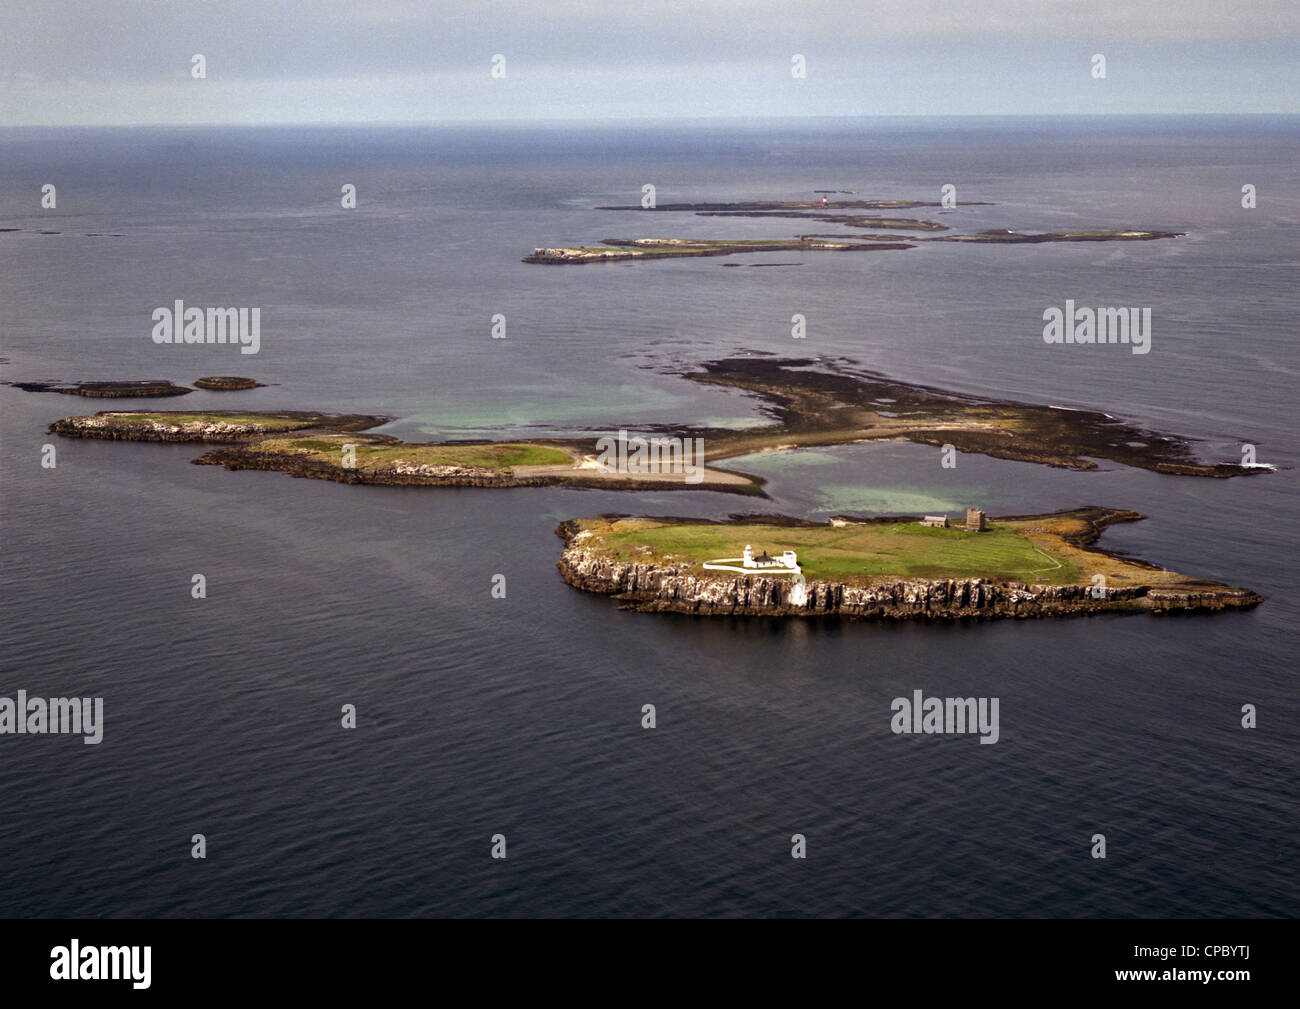 historic aerial view of the Farne Islands National Nature Reserve off the coast of Northumberland taken in August Stock Photo